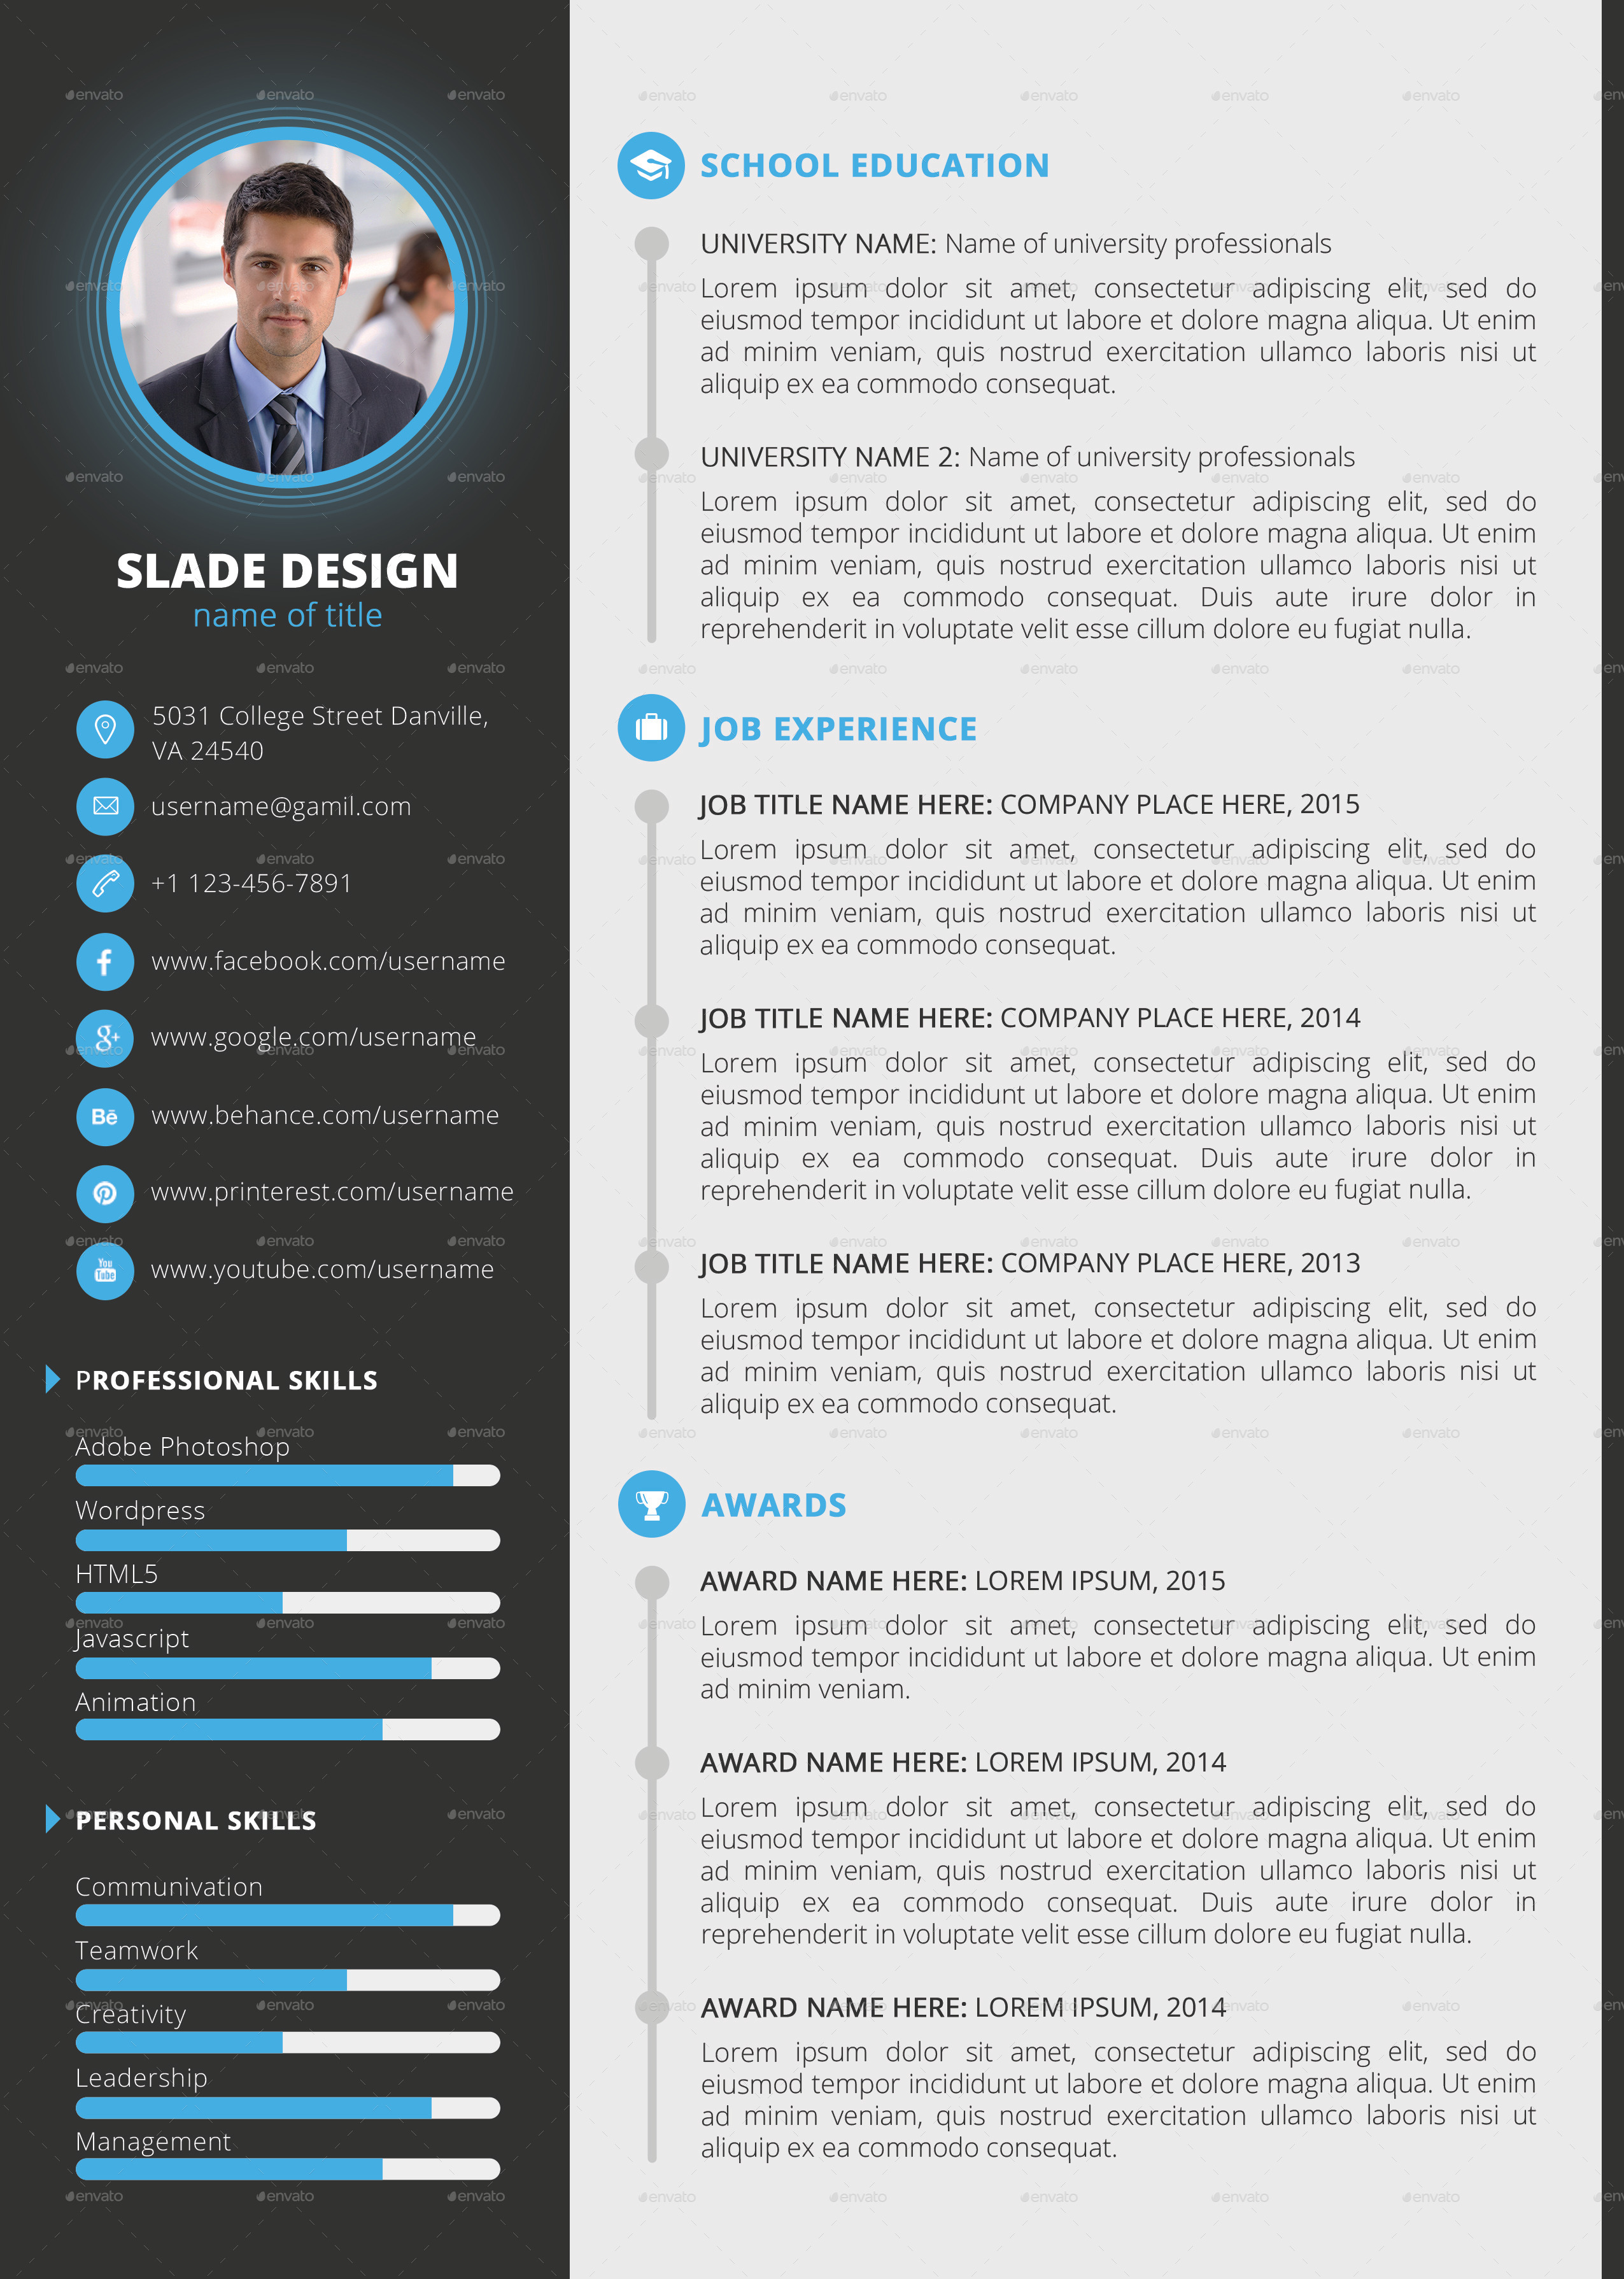 Powerpoint Resume Template. best photos of jigsaw puzzle pieces 6 ...